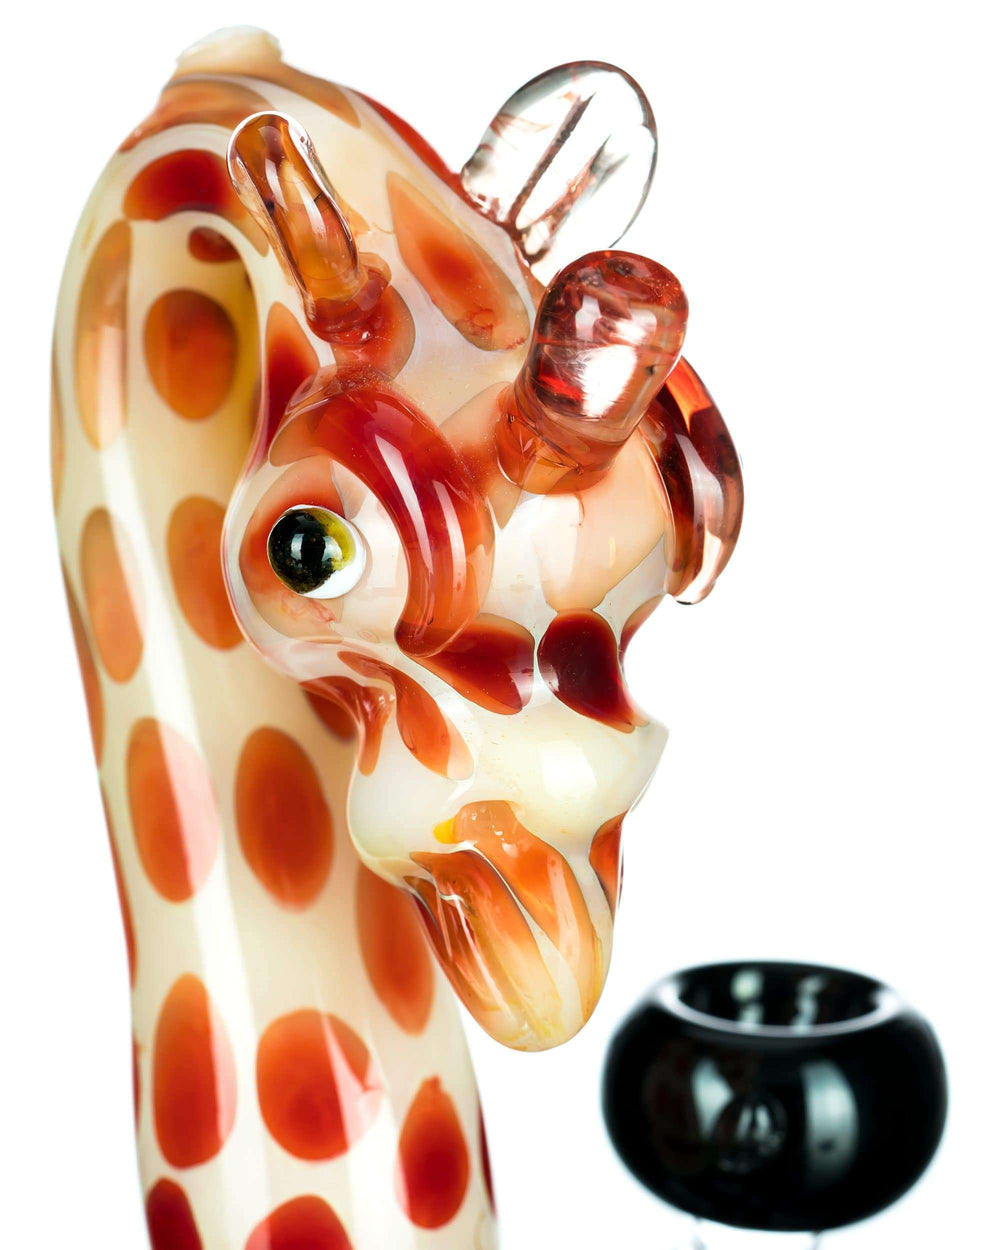 Giraffe Neck Bong - Destination Smoke